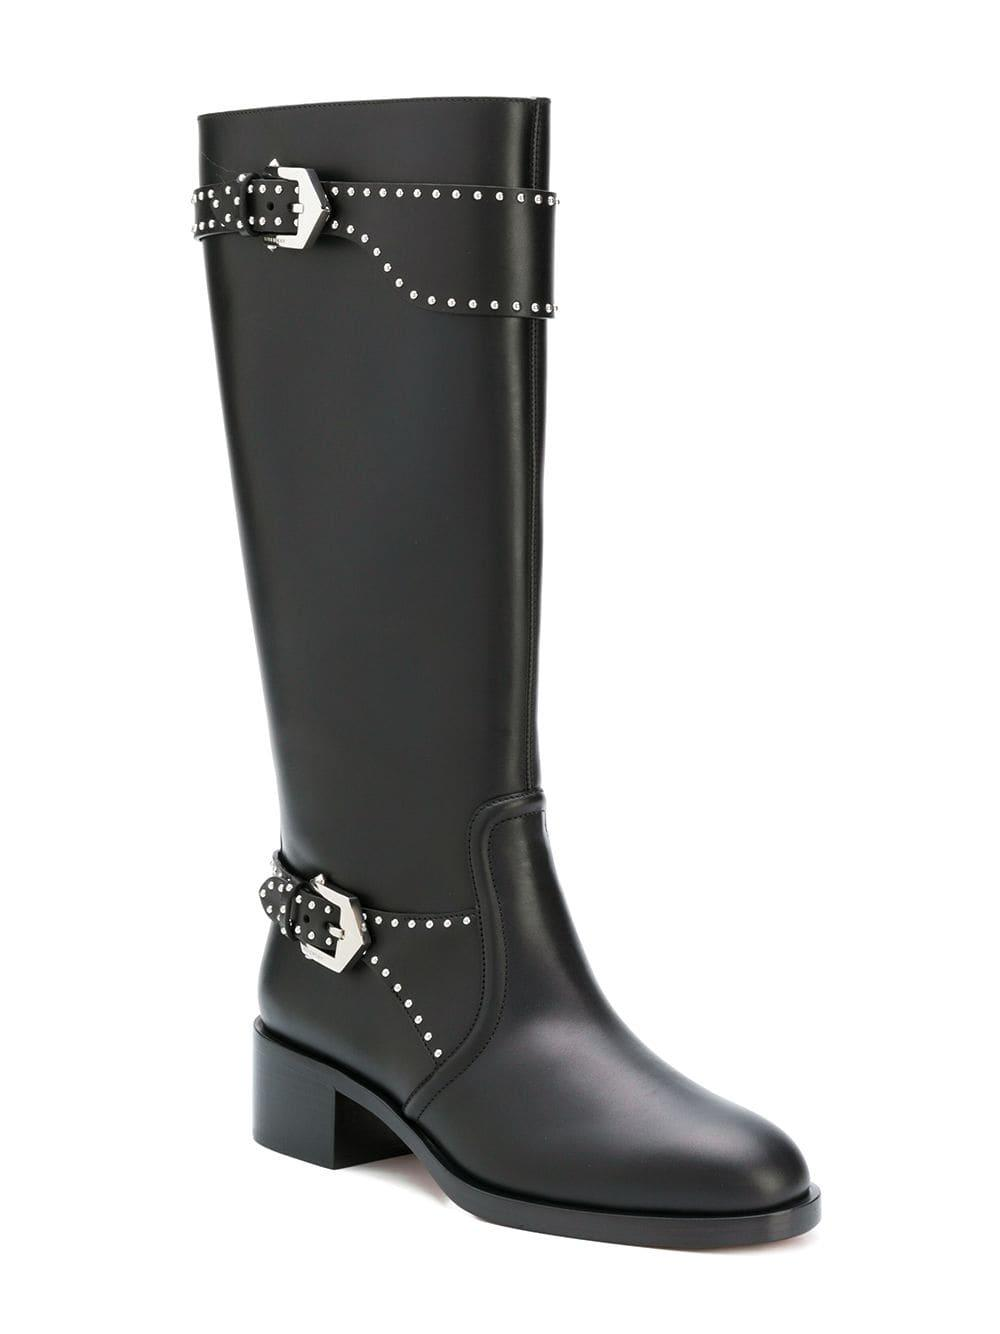 a439b704c78d Lyst - Givenchy Studded Riding Boots in Black